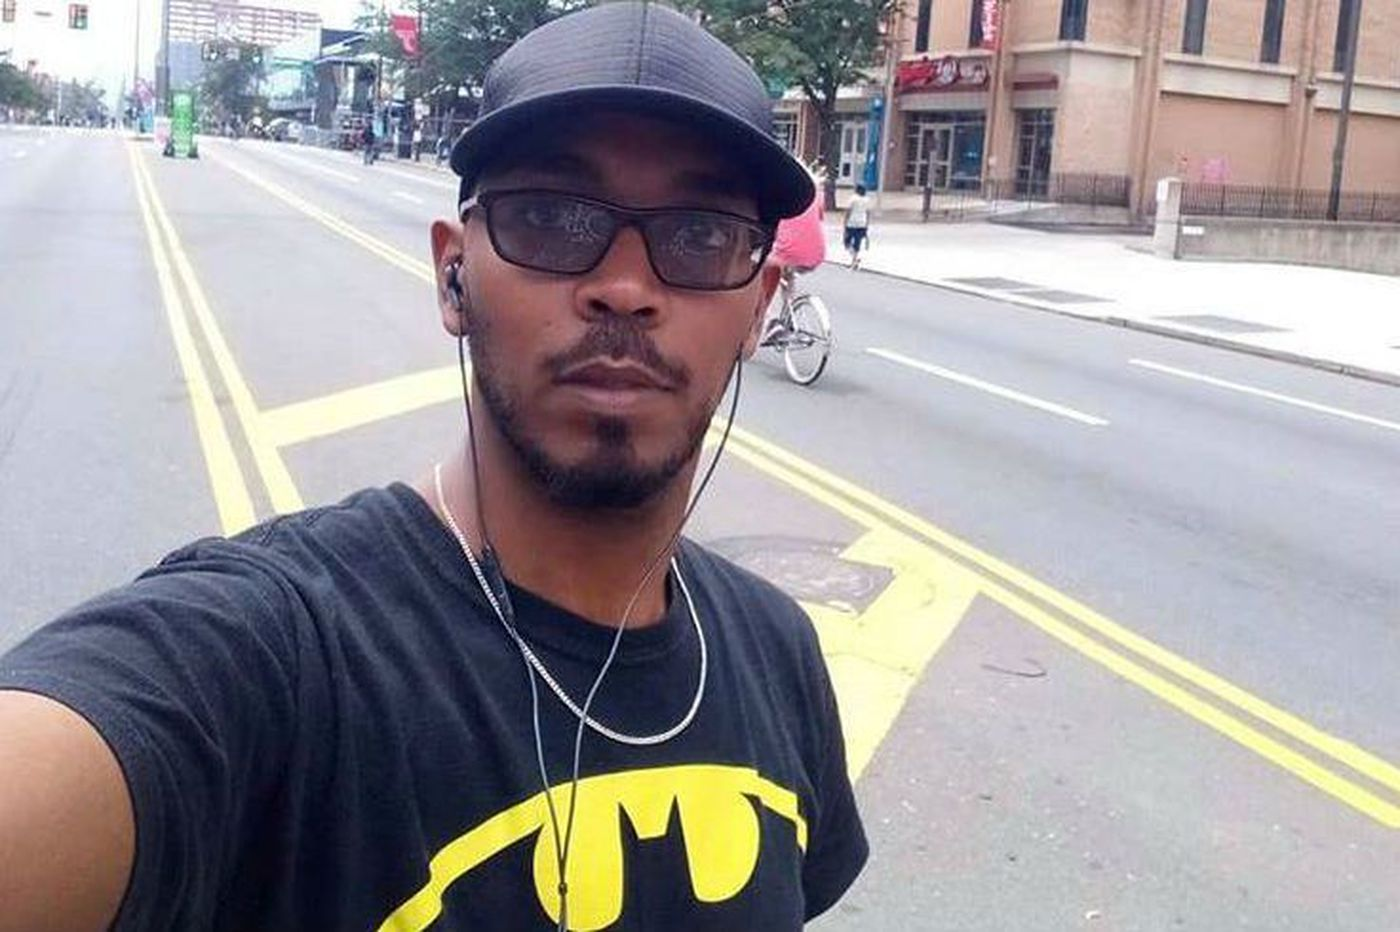 Police identify officer who shot Ethiopian immigrant; victim called 911, his boss says